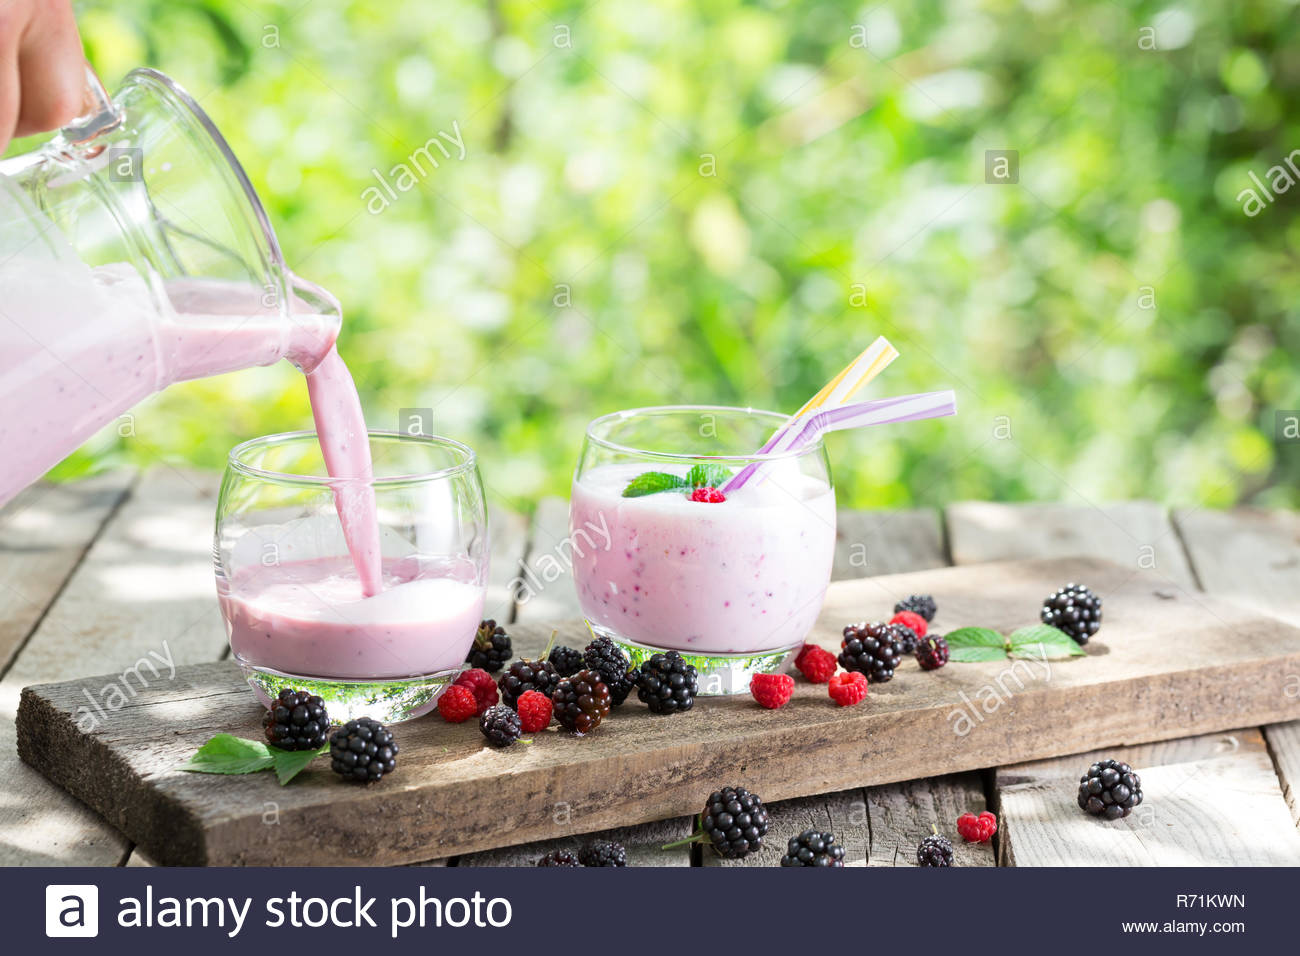 Berry smoothie or yogurt pouring from jug into glass against the 1300x956